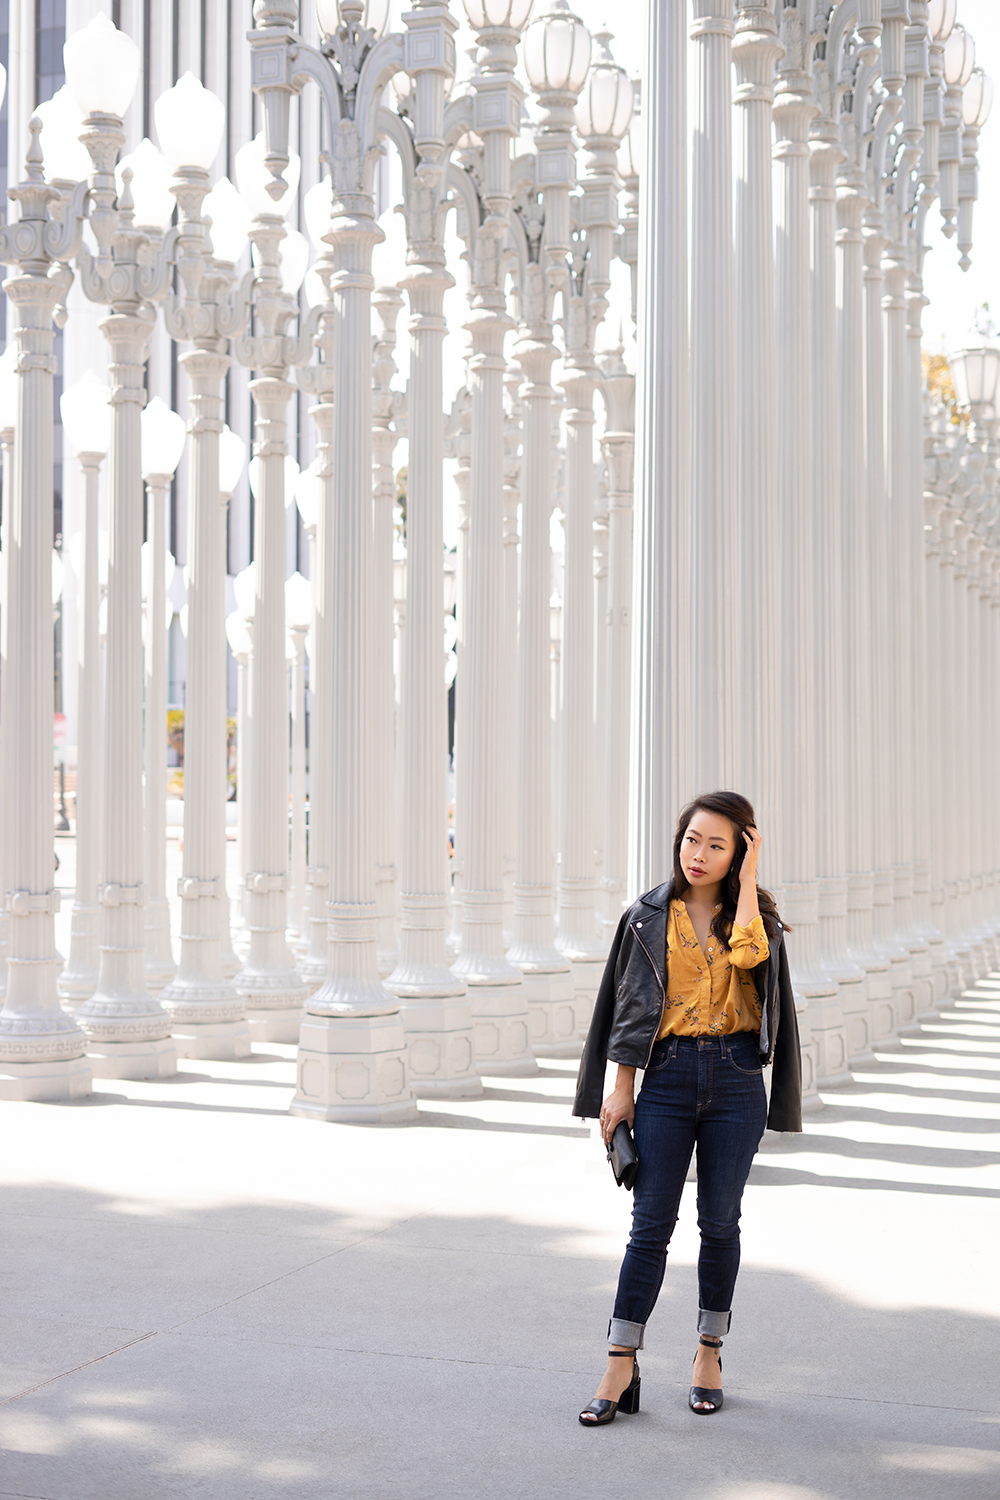 01-luckybrand-denim-jeans-leatherjacket-lacma-urbanlights